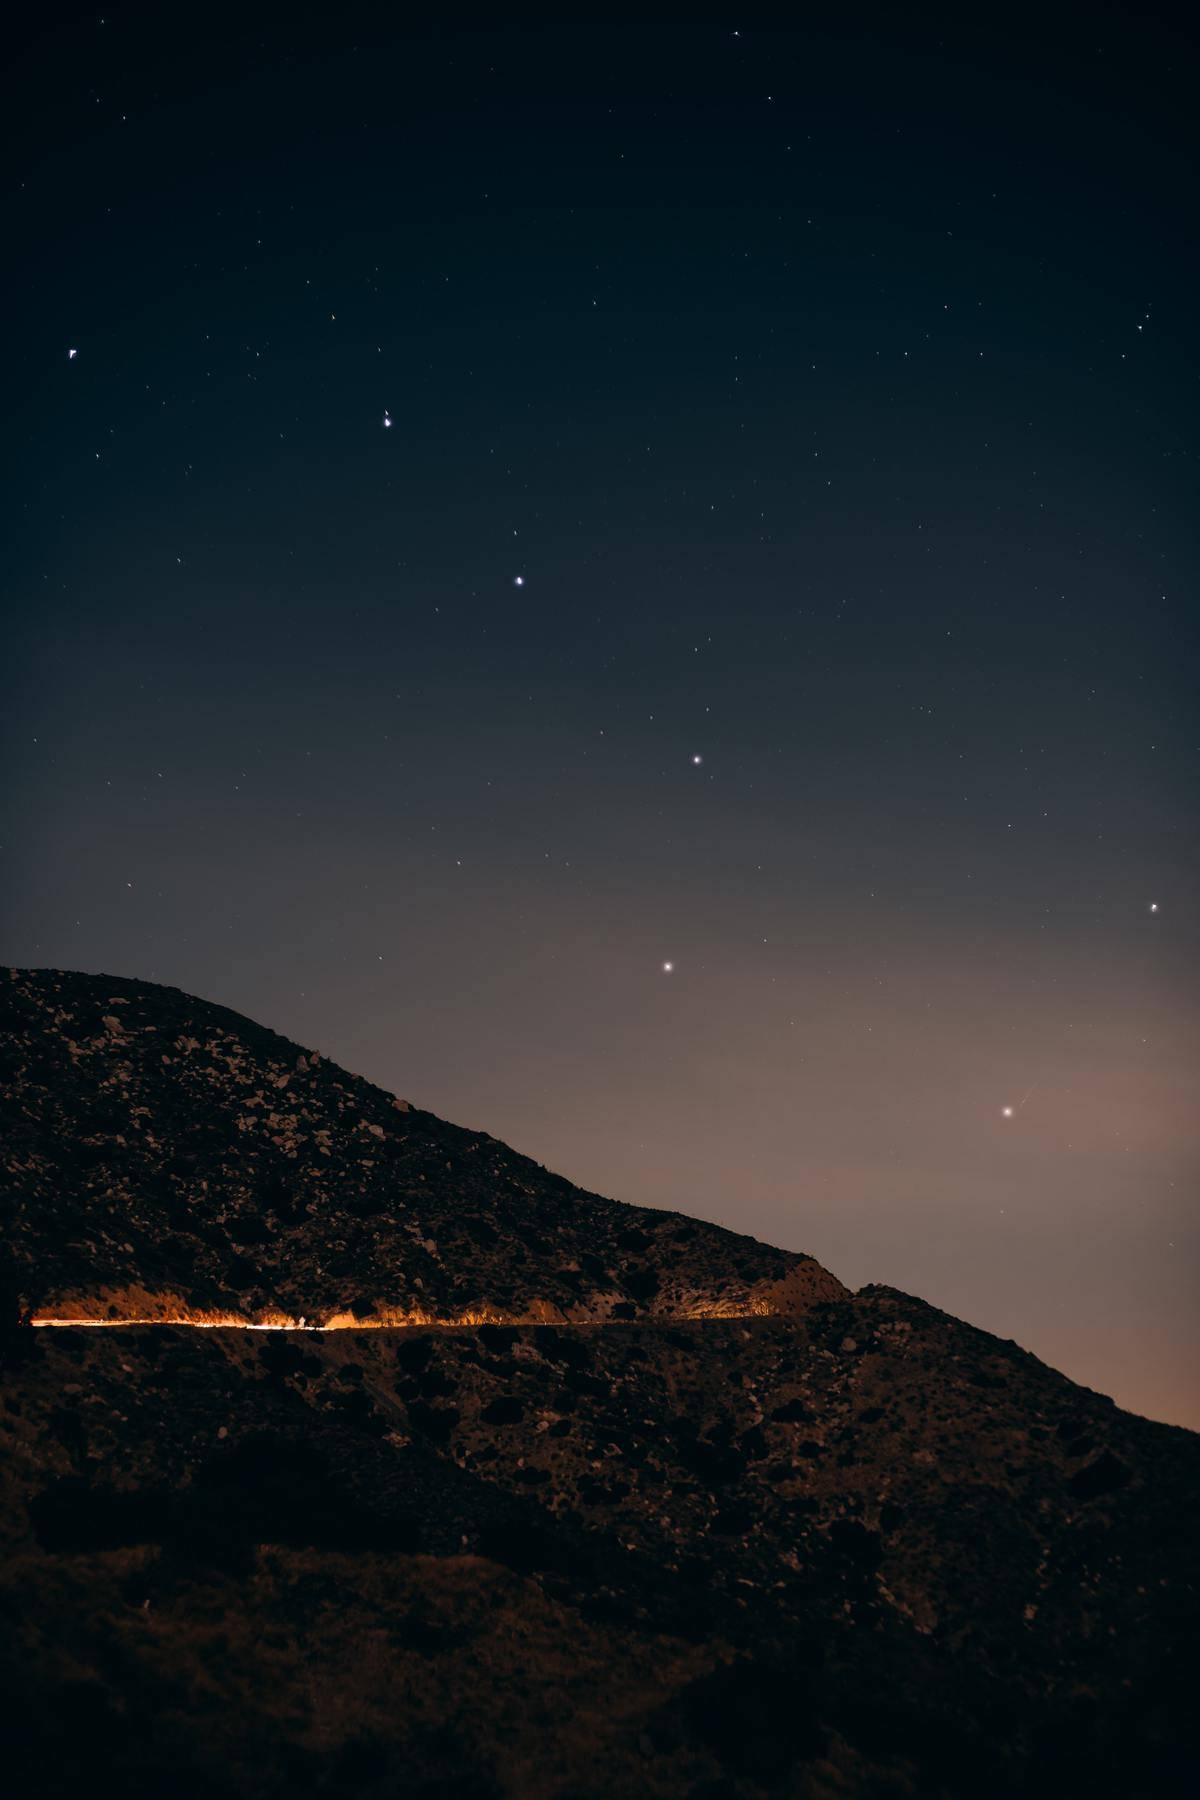 A mountain and the Little Dipper